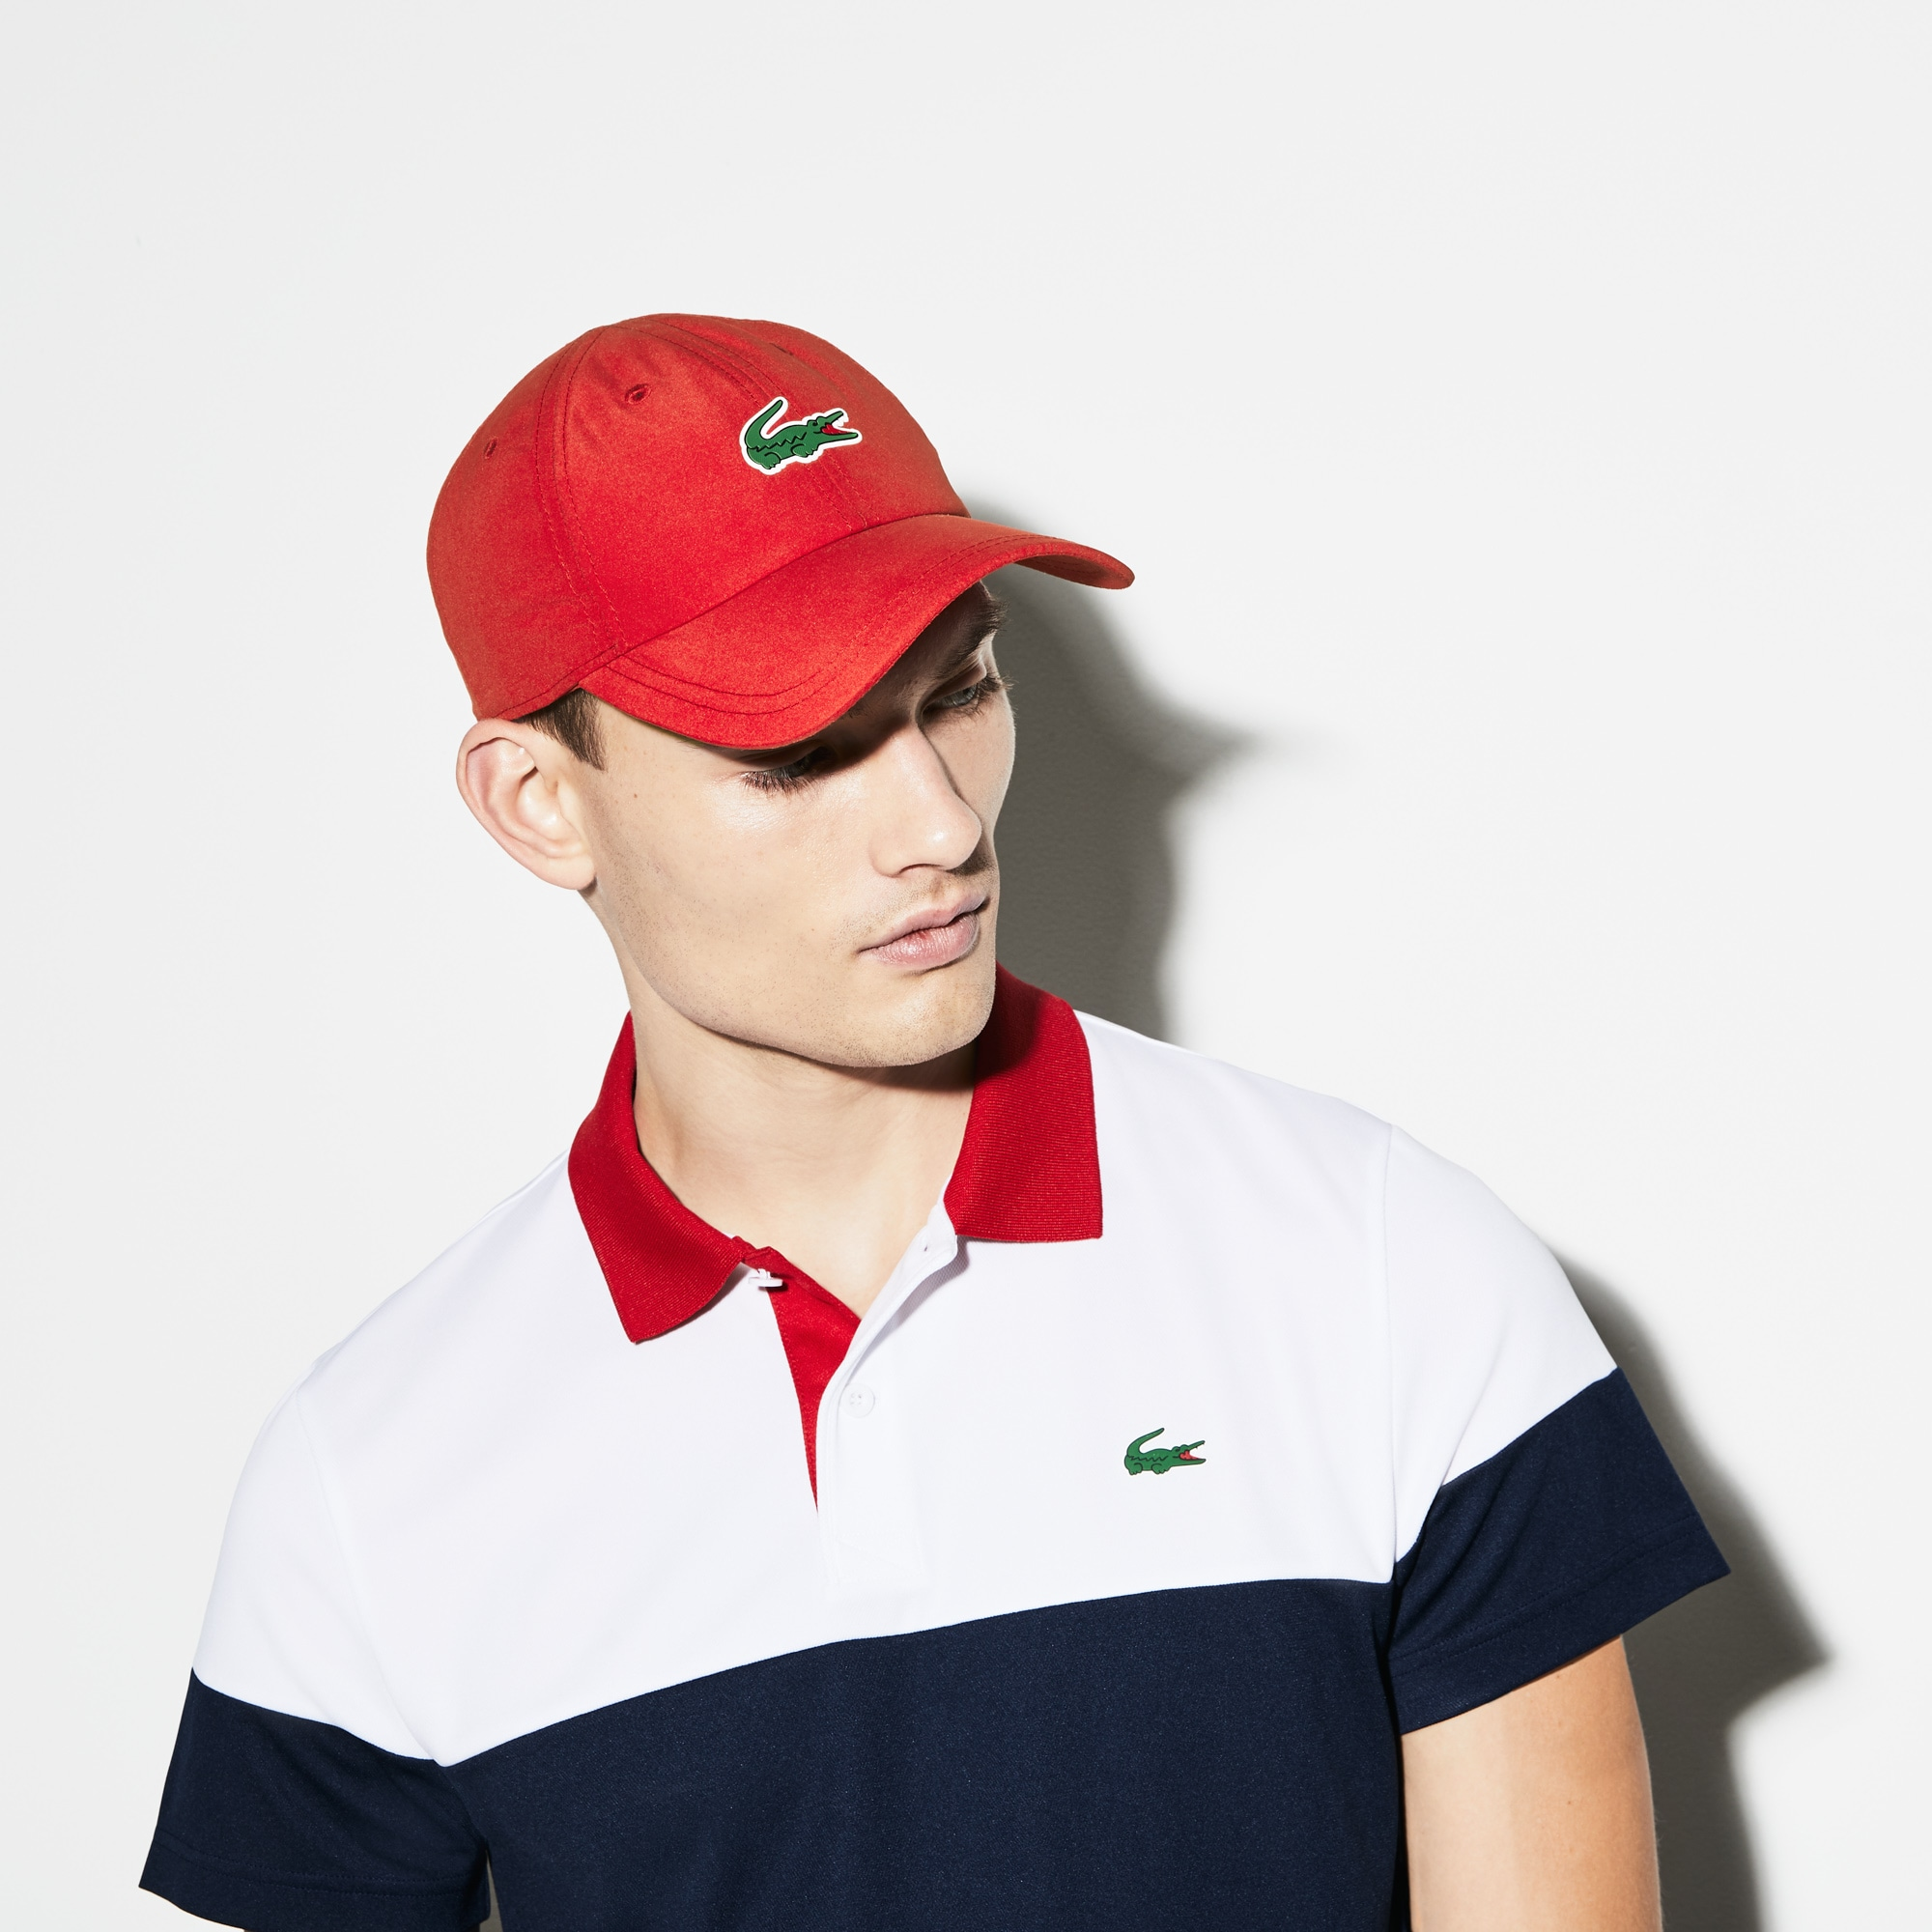 f7abfeecb0 Polos, chaussures et maroquinerie | LACOSTE